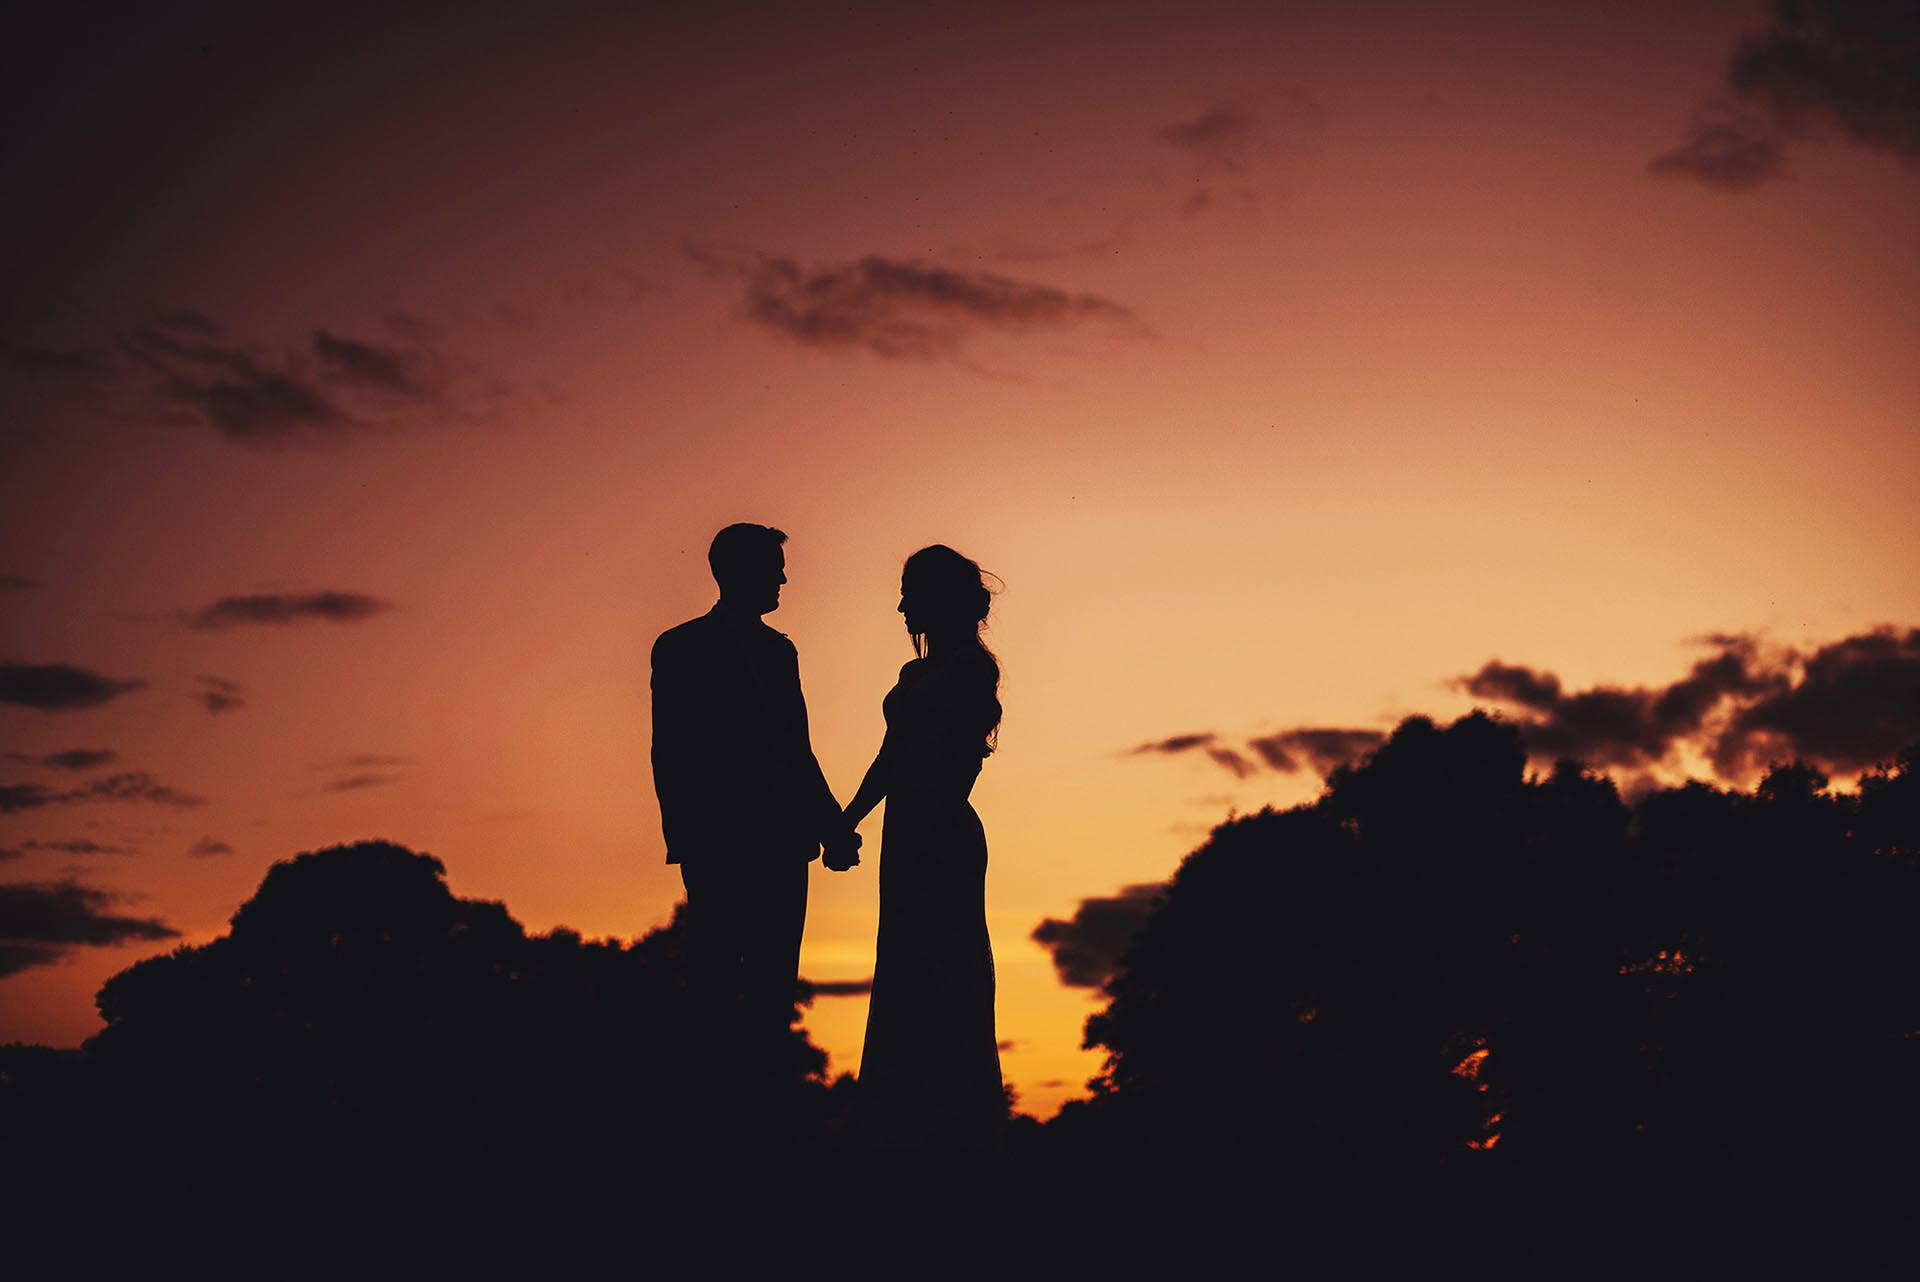 Bride and Groom on a hill in sillhouette